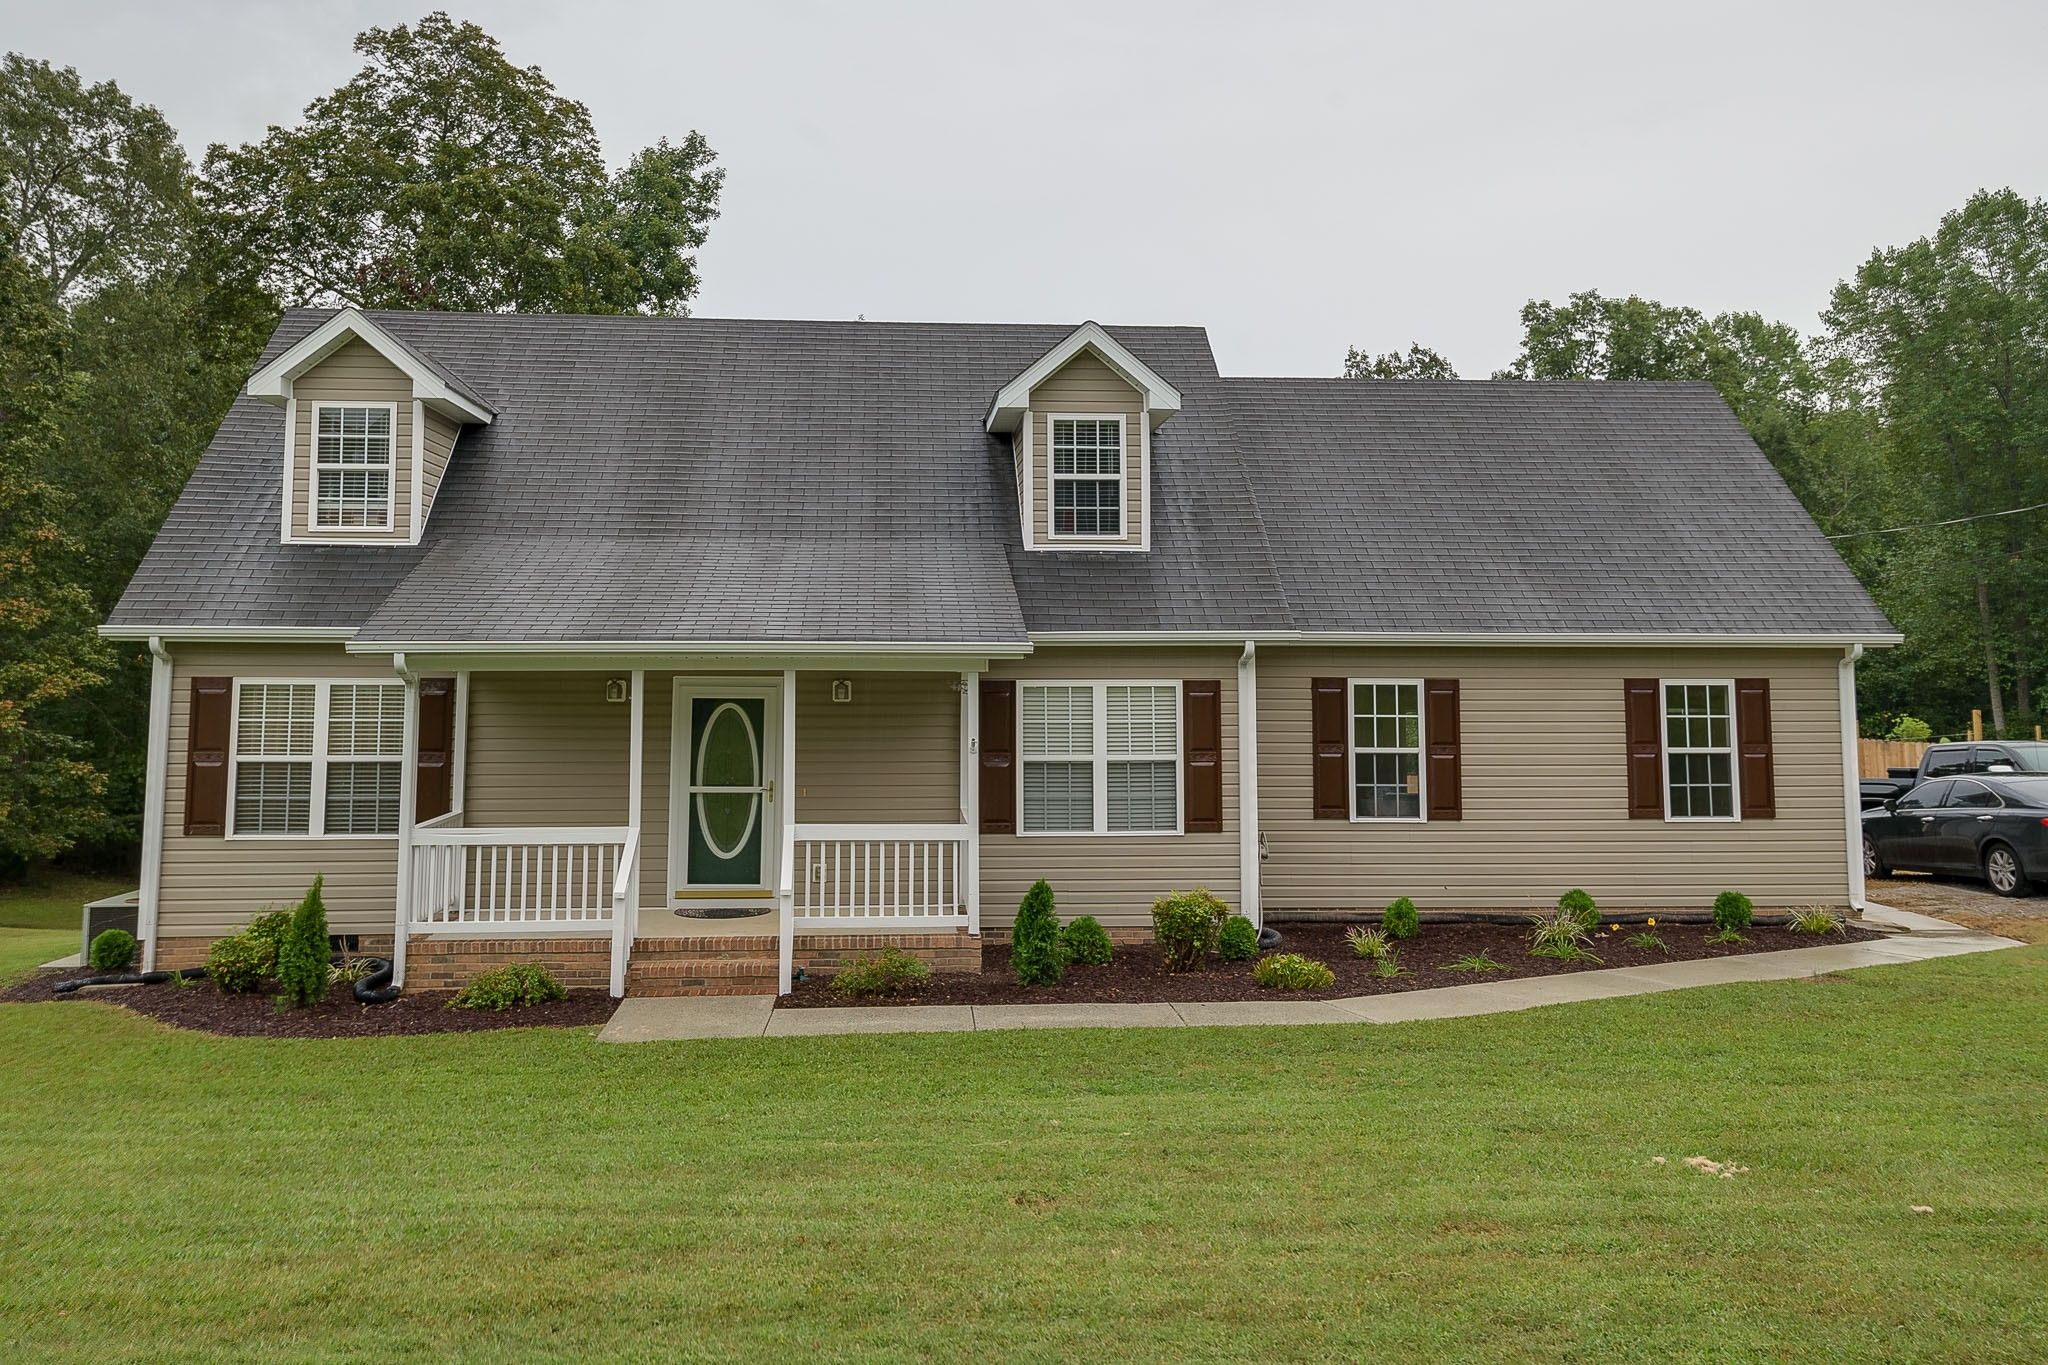 218 BROWN LANE Property Photo - Estill Springs, TN real estate listing